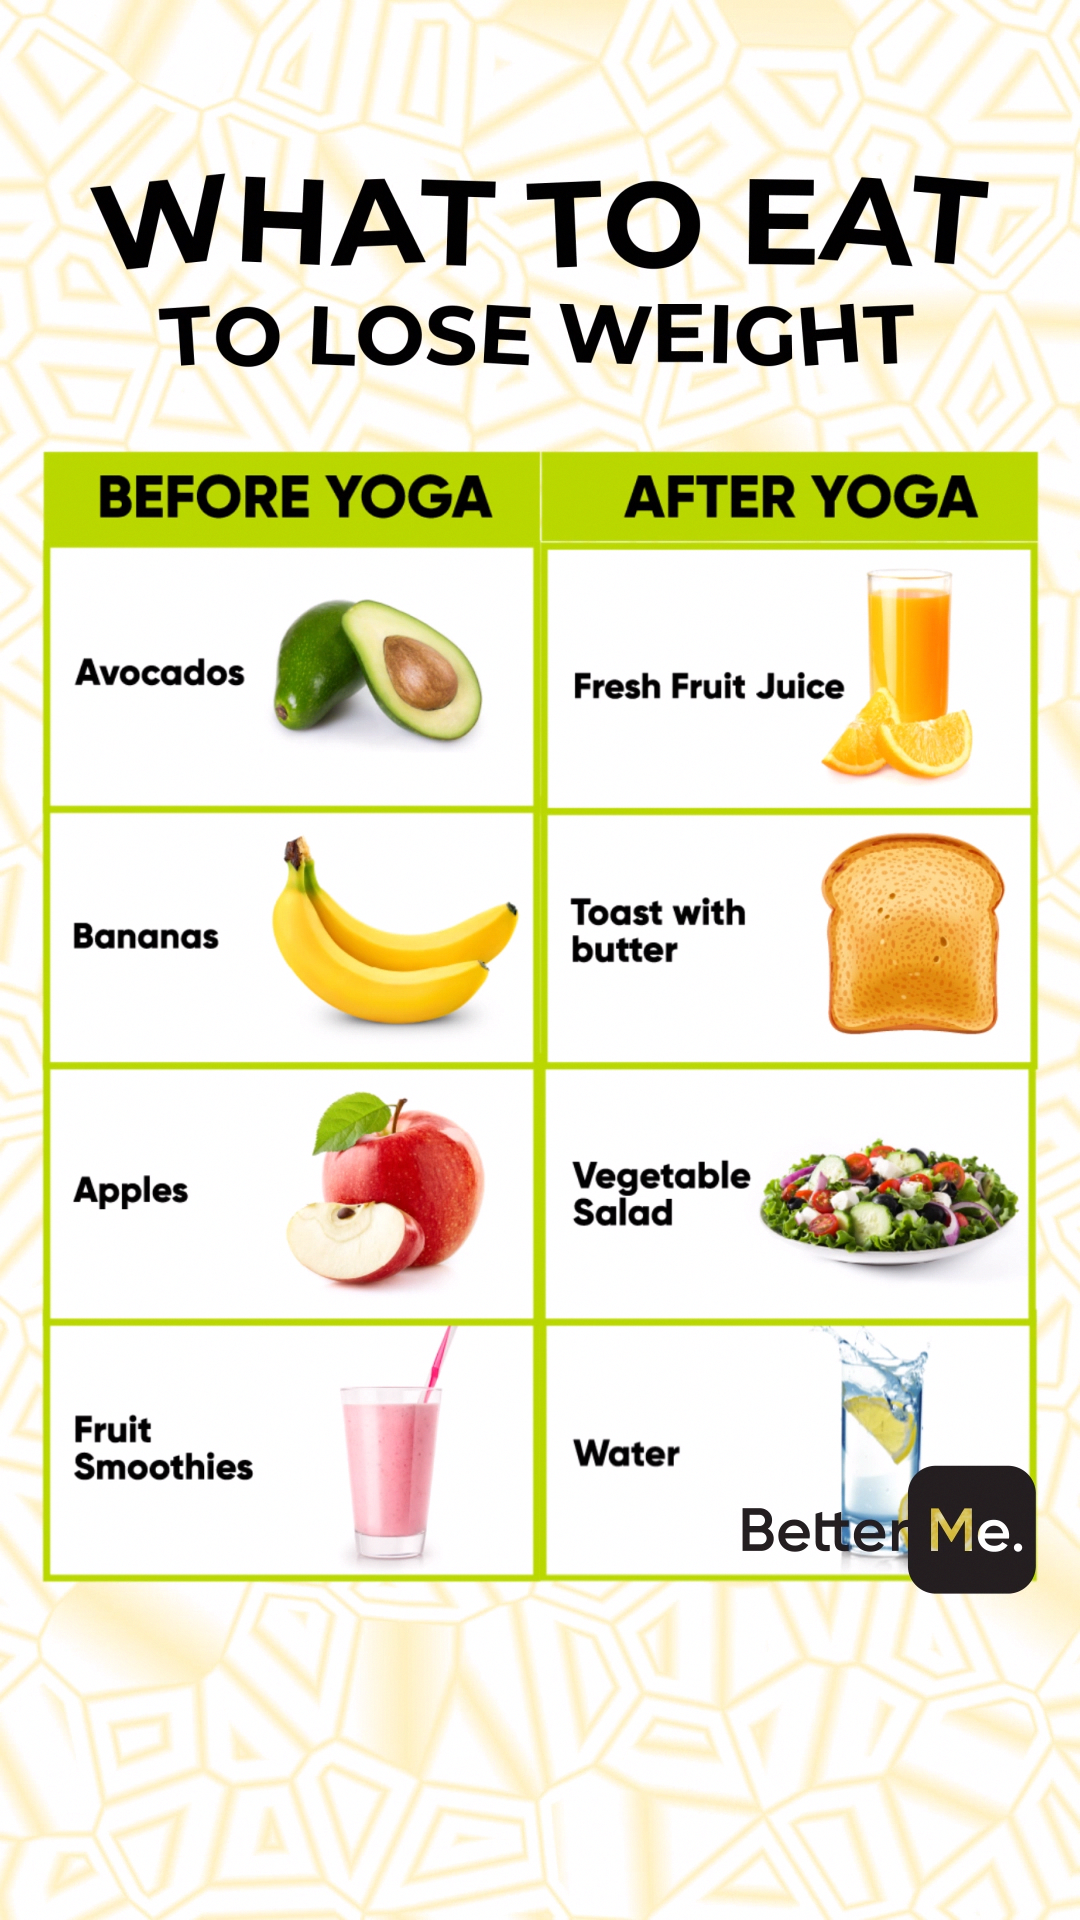 Your chance to make your body perfect with yoga workout!!! Combine your favorite poses in one yoga workout and become slimmer as soon as possible!!! 28-Day Yoga Challenge to prepare the body to summer!!! #yoga #weightlossyoga #yogaforweightloss #yogapractise #yogaasanas #yogaexercises #yogatraining #health #healthylifestyle #yogalifestyle #FatBurningFoods